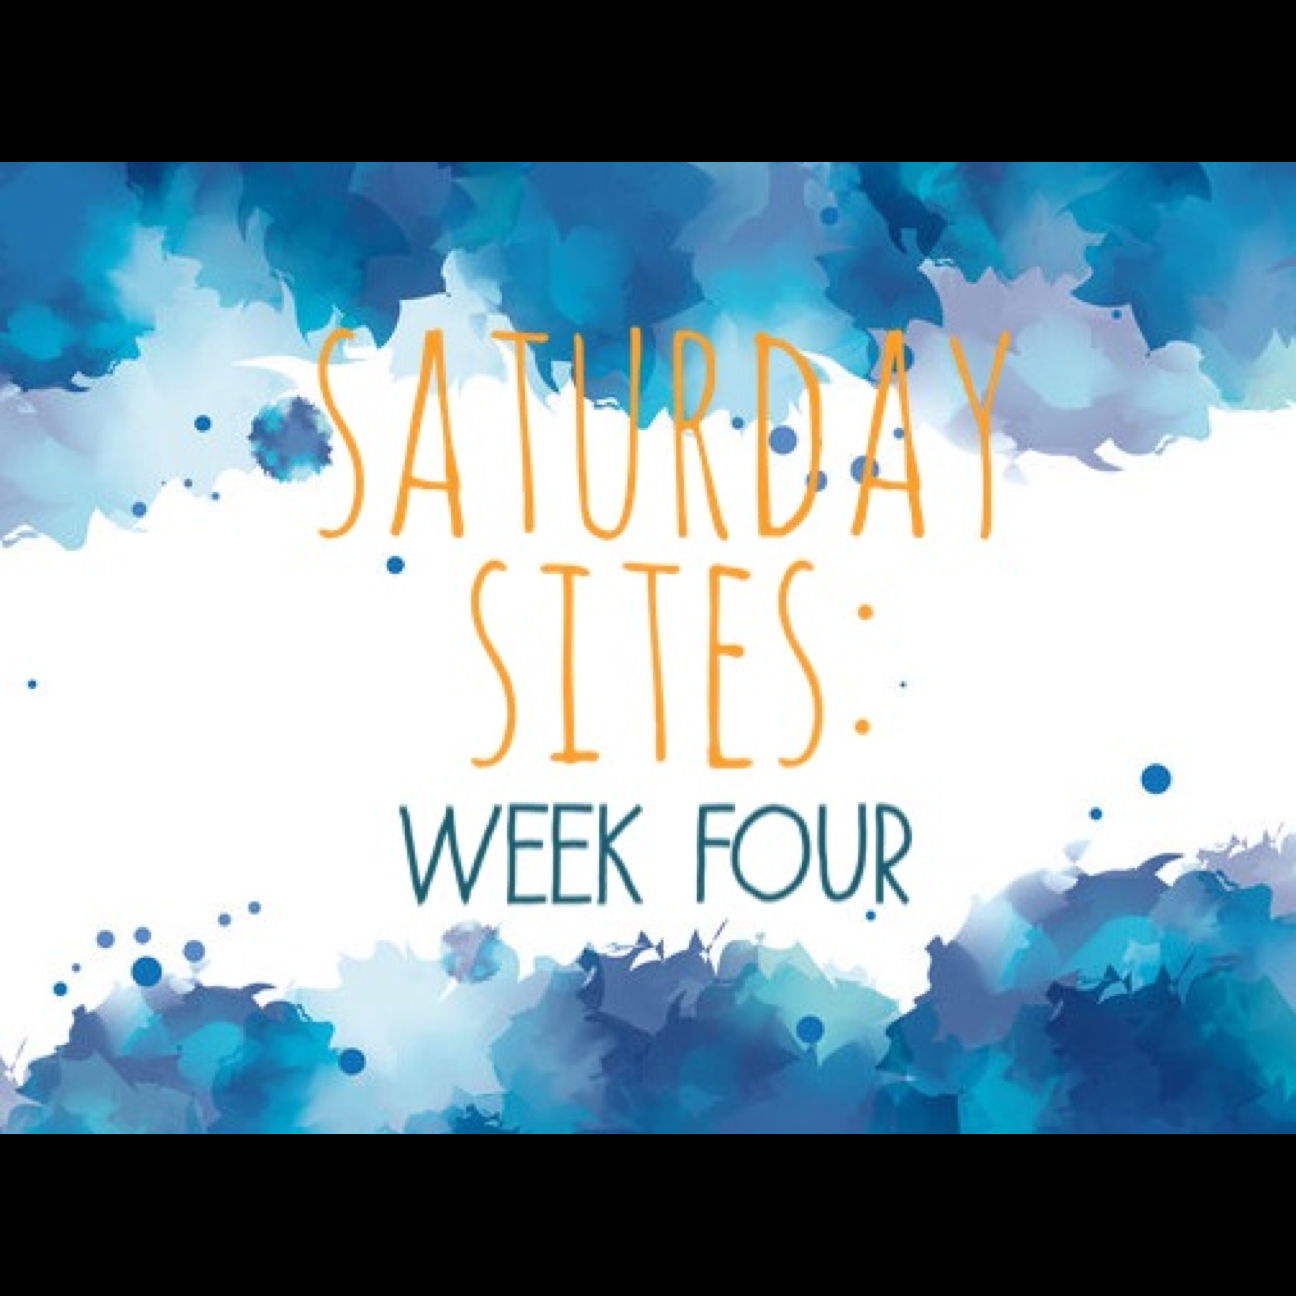 Forbidden Rice Blog | Saturday Sites week 4 2016